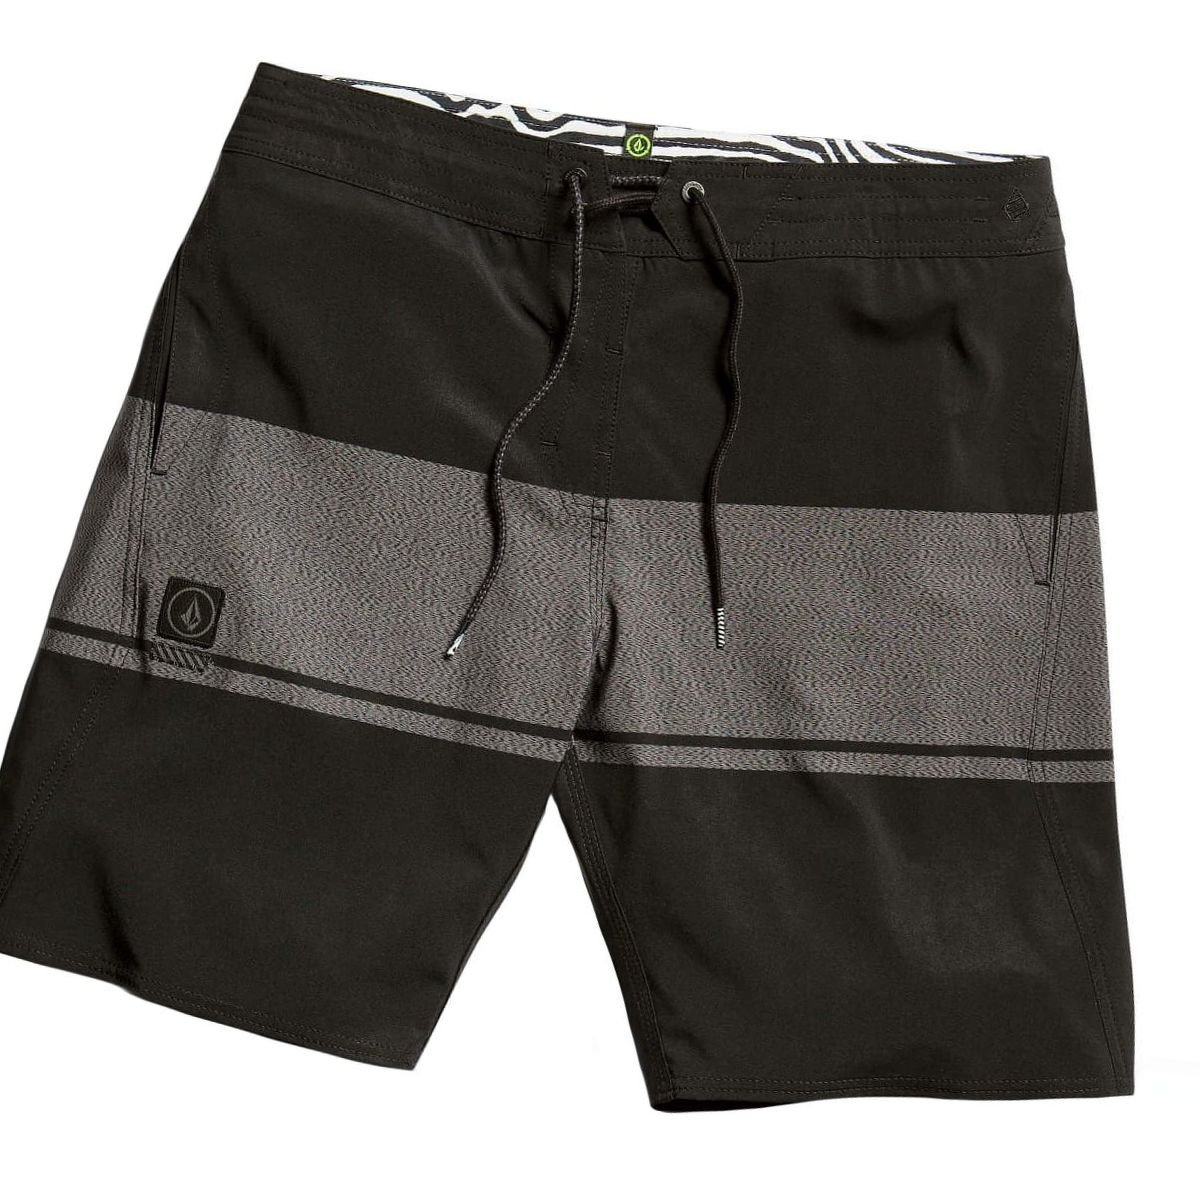 Volcom Quarta Static Stoney 20in Board Short - Men's